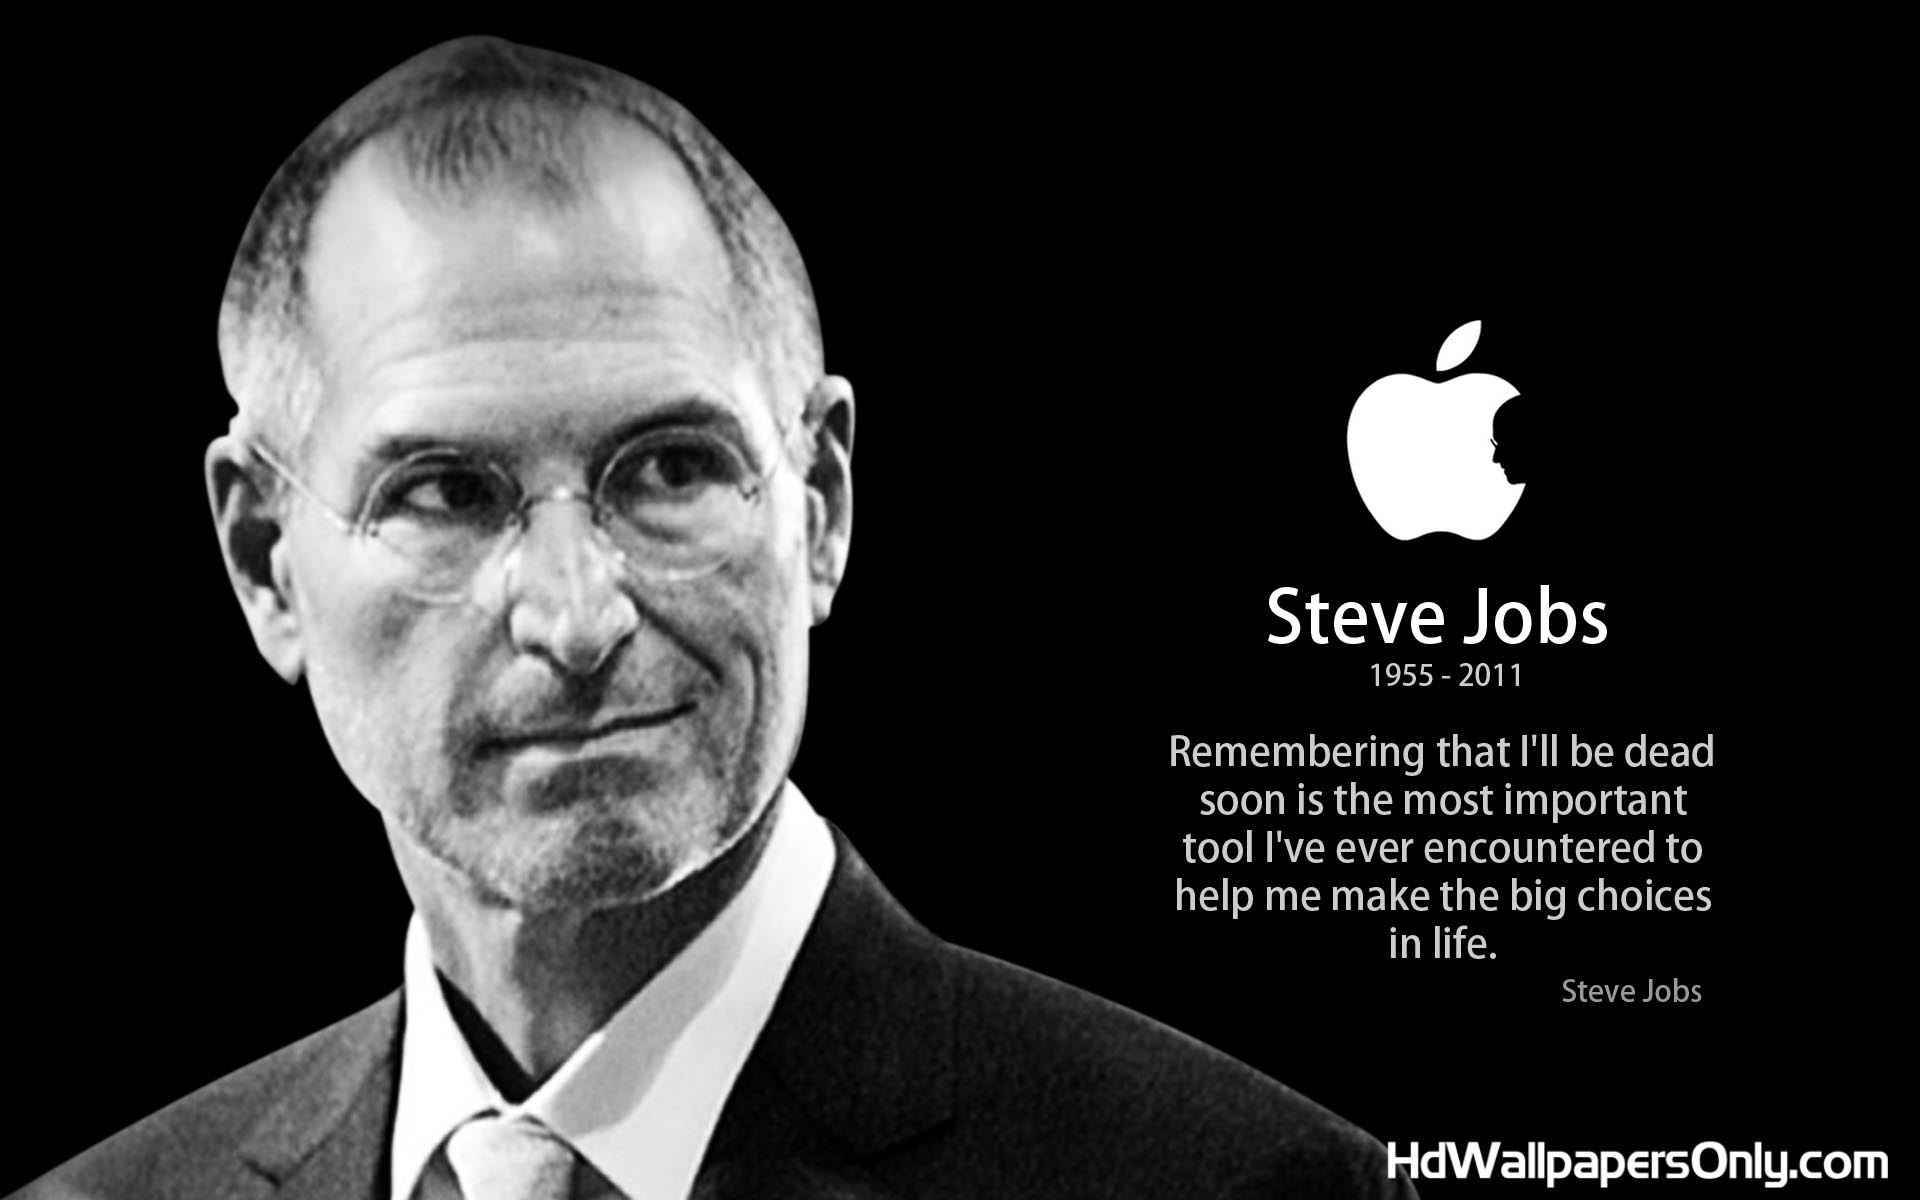 5 Things Creatives Can Learn From Steve Jobs